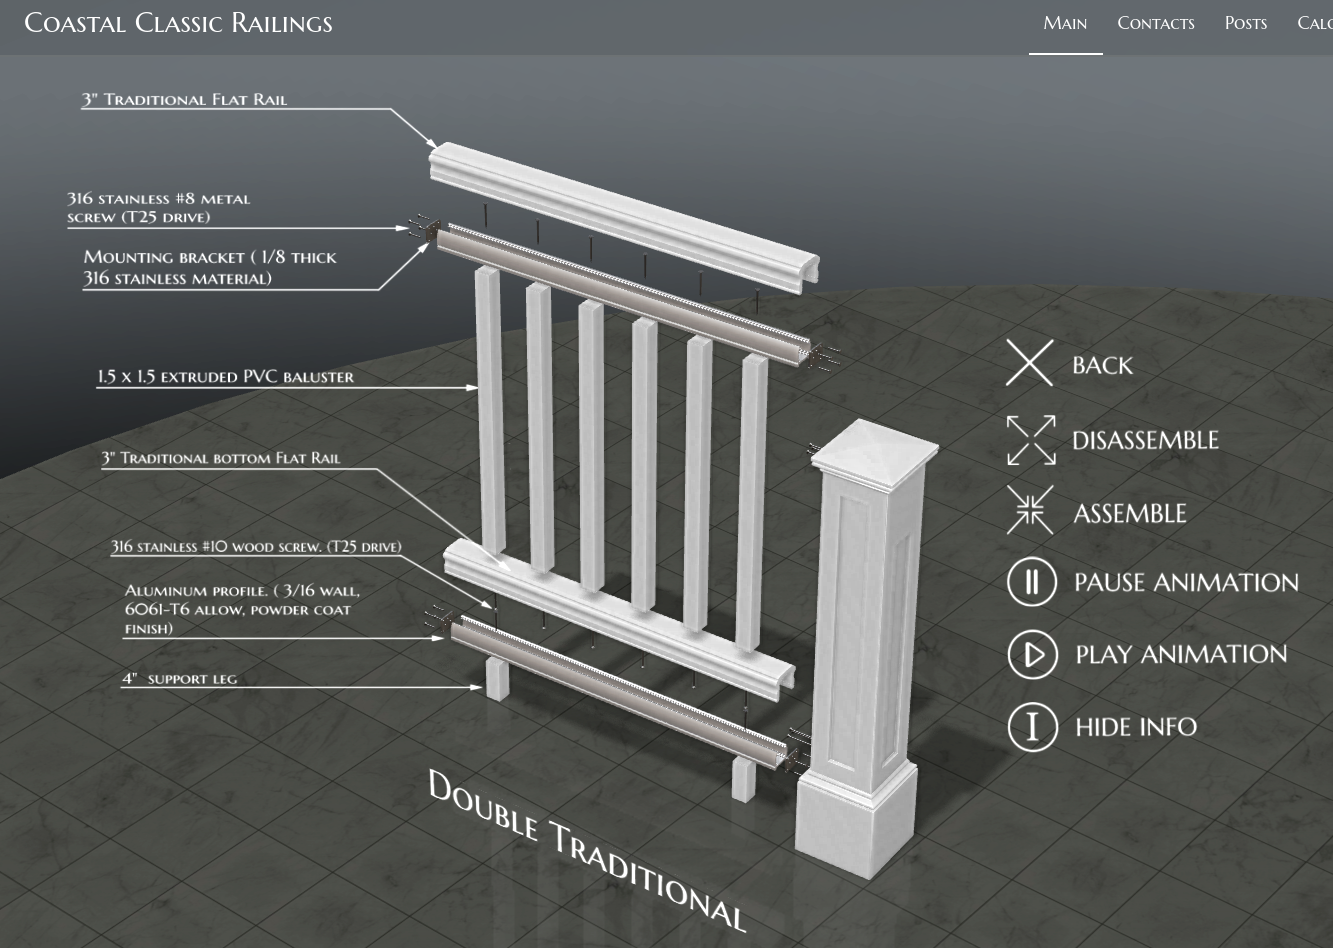 Coastal Classic Railings - 3D Website and product